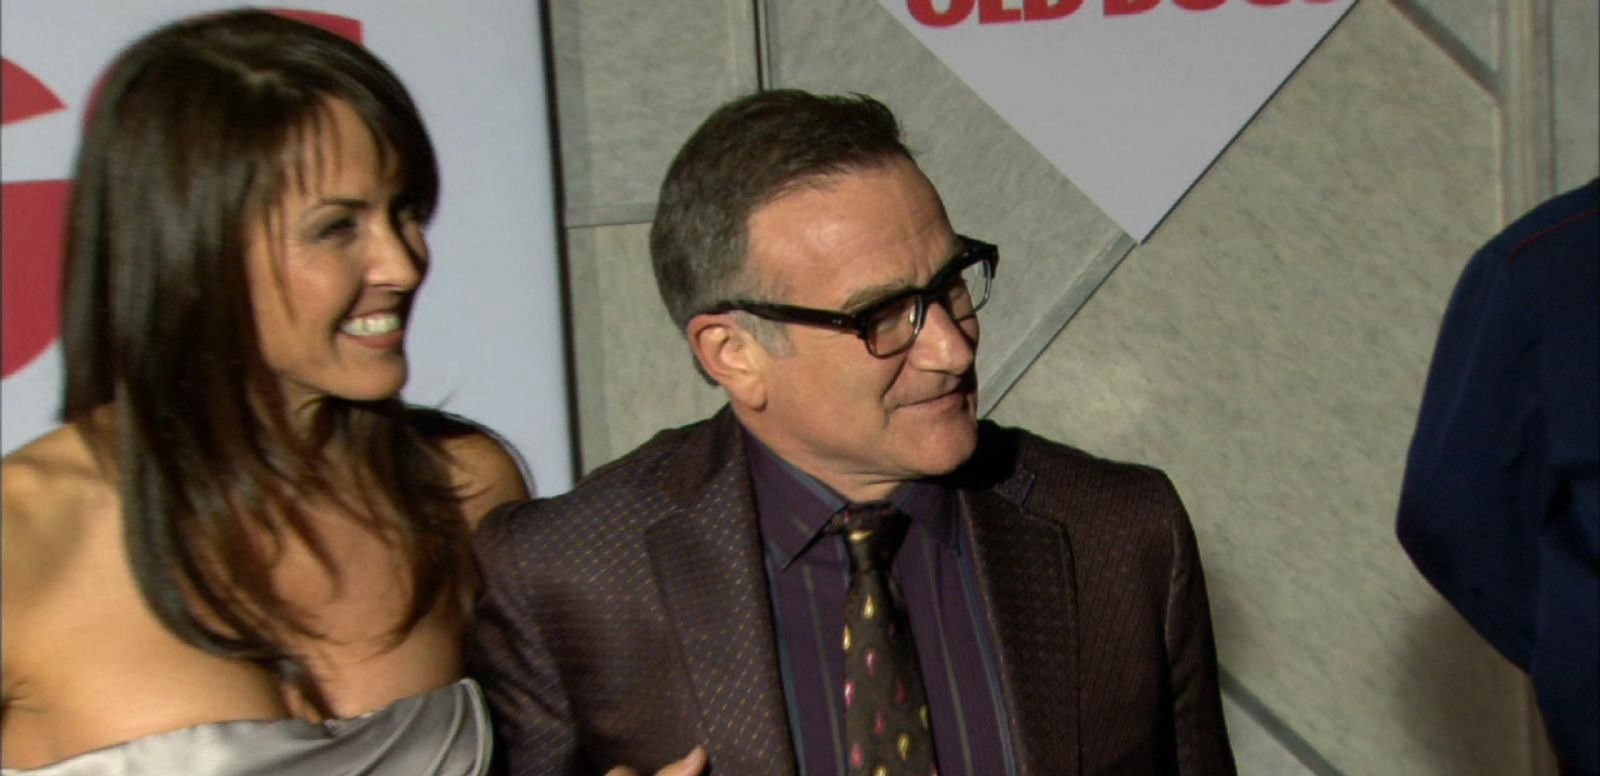 VIDEO: Robin Williams Family in Court to Sort Out Who Gets Property